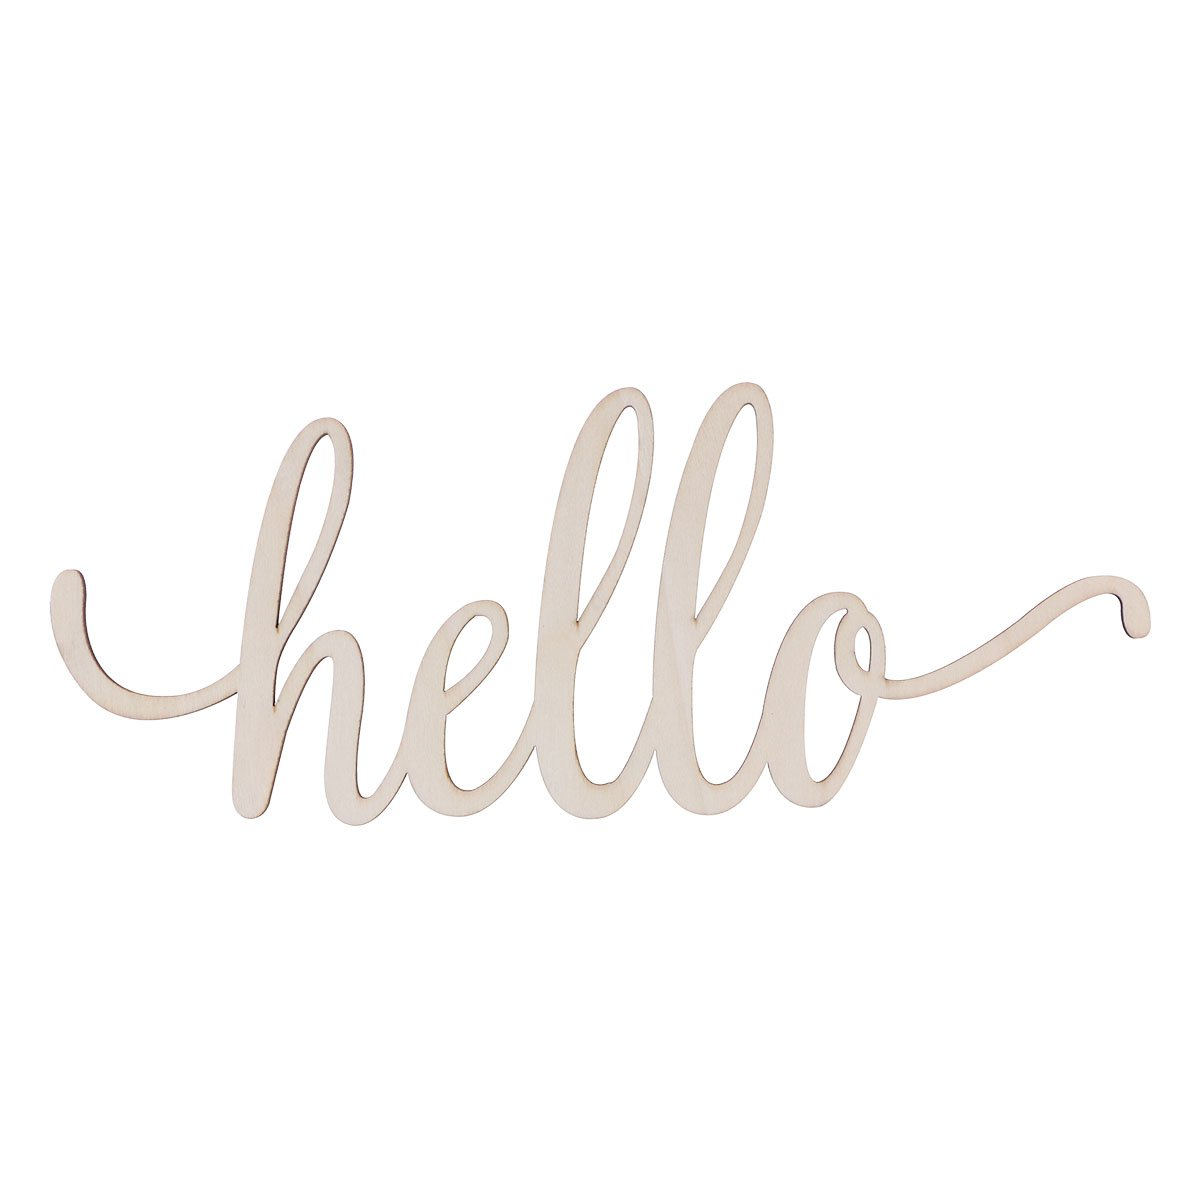 WINOMO Hello Sign Wooden Hello Cutout Unfinished Wood Hello Sign for Front Door Wreath Hello Letter for Home Decor Wall Art, 12x5x0.15in